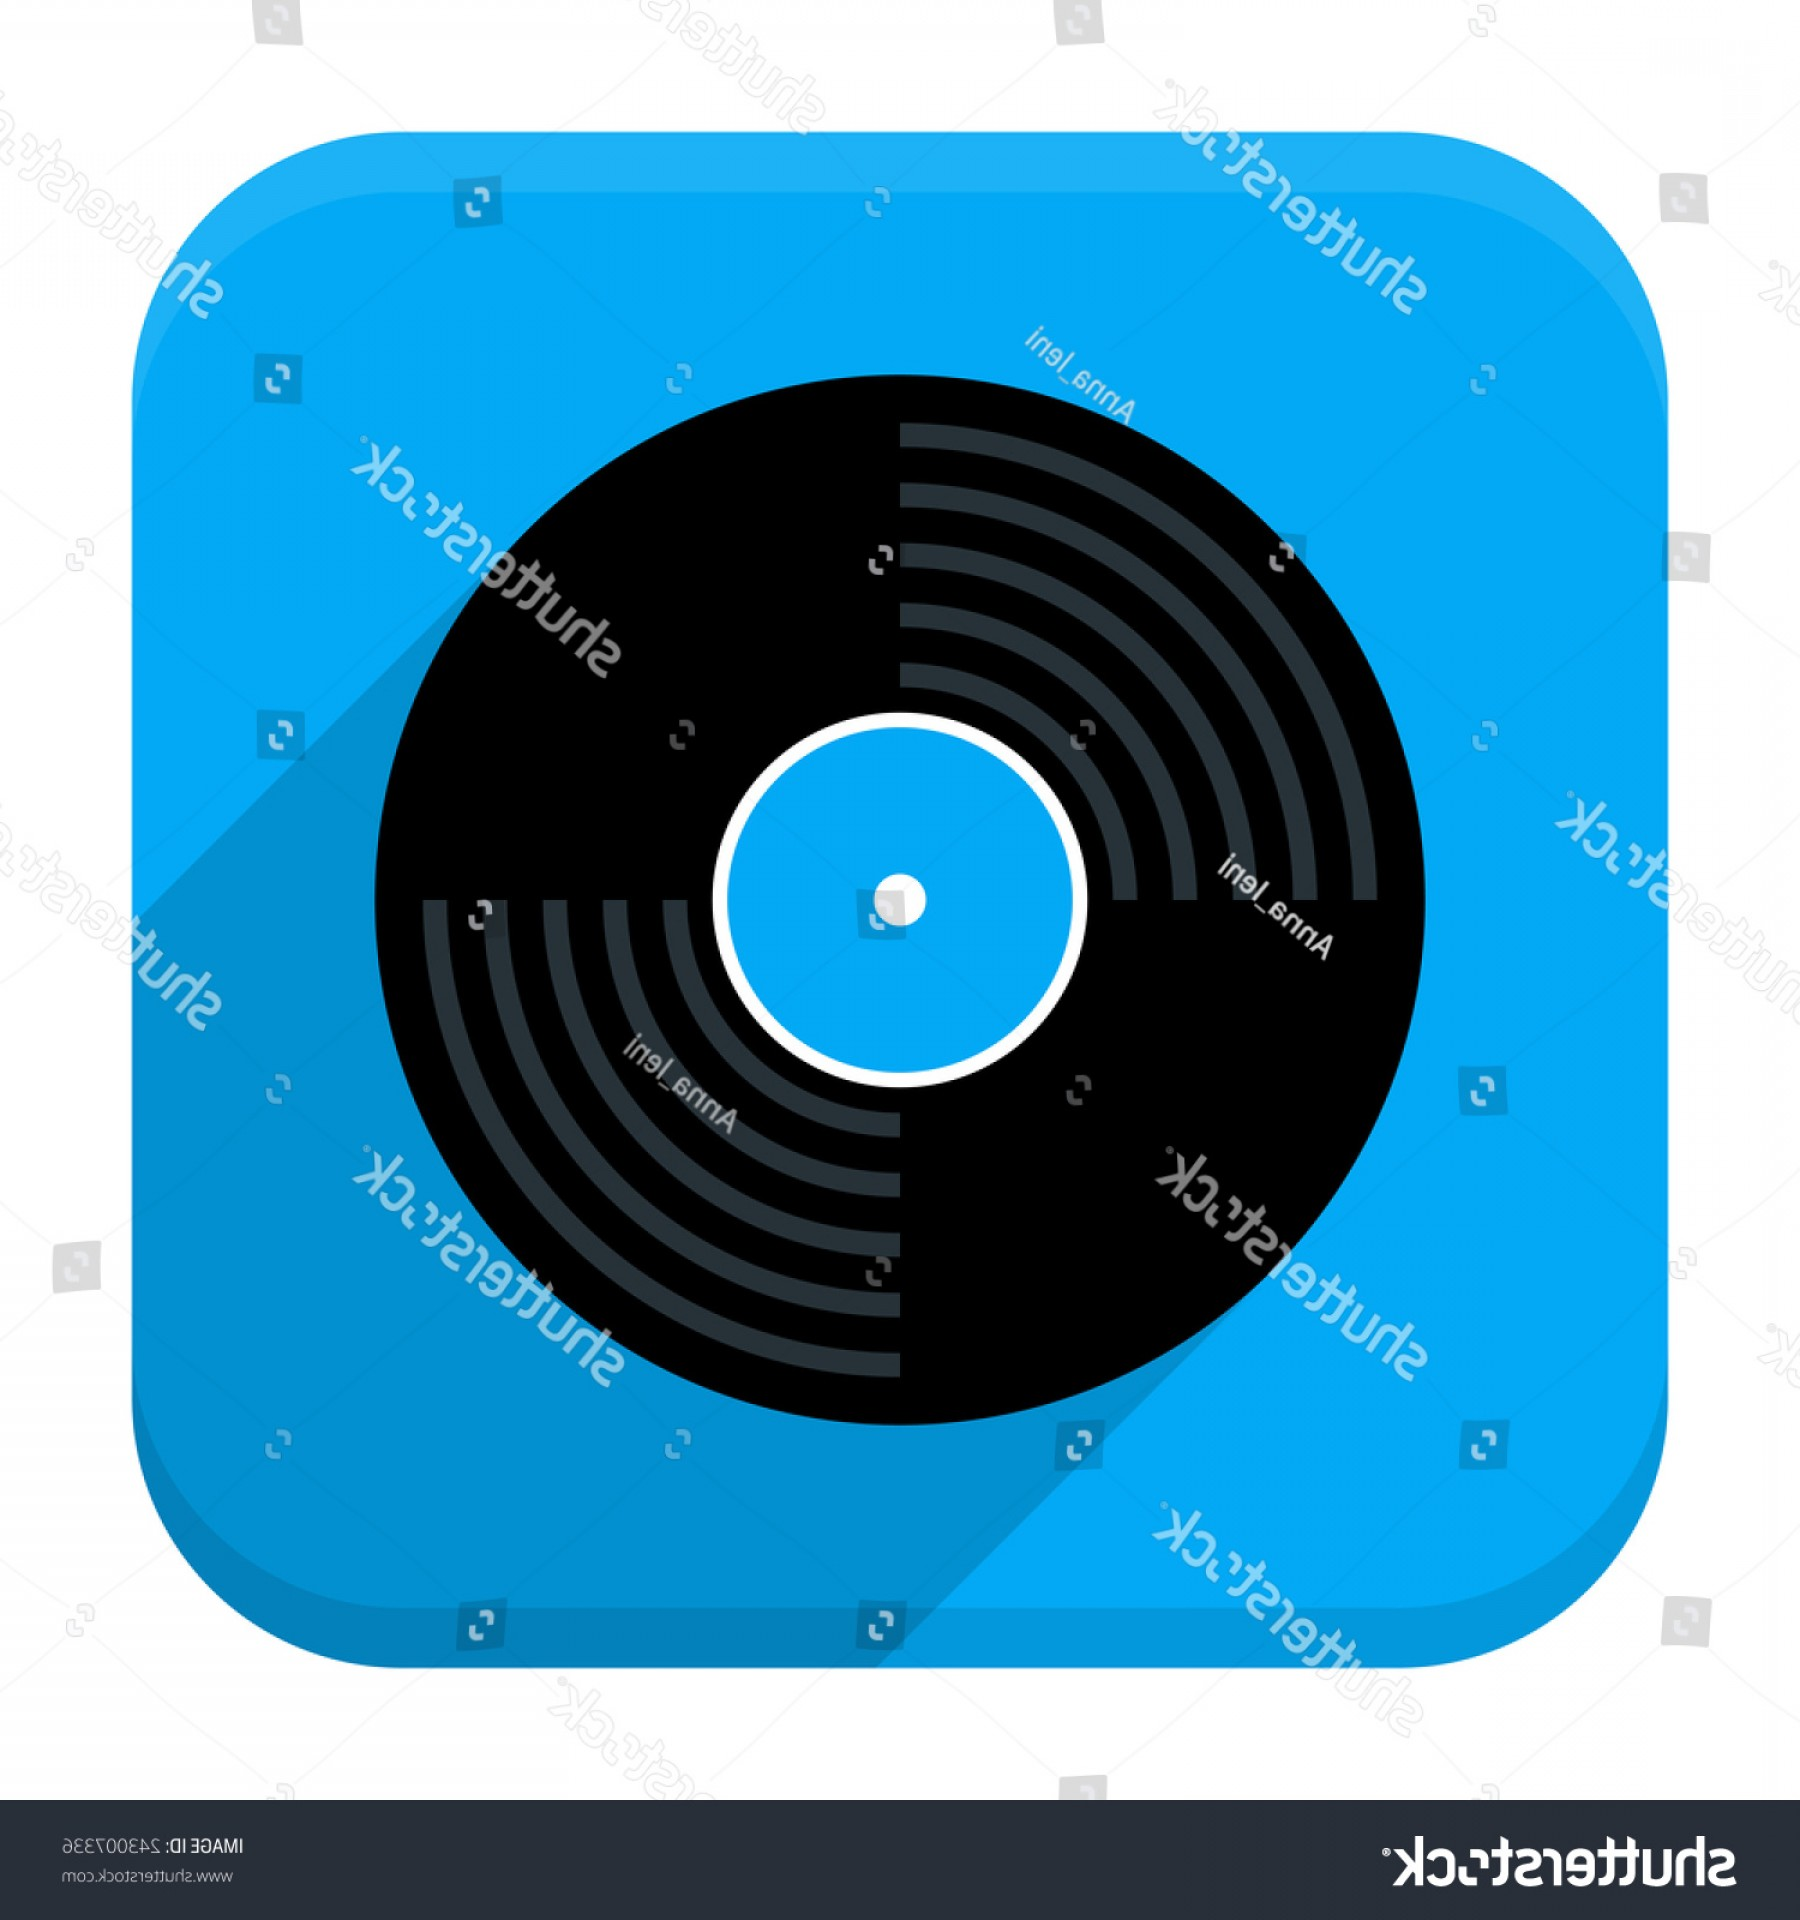 Vinyl Vector Tools: Vector Illustration Vinyl Record Disc Flat